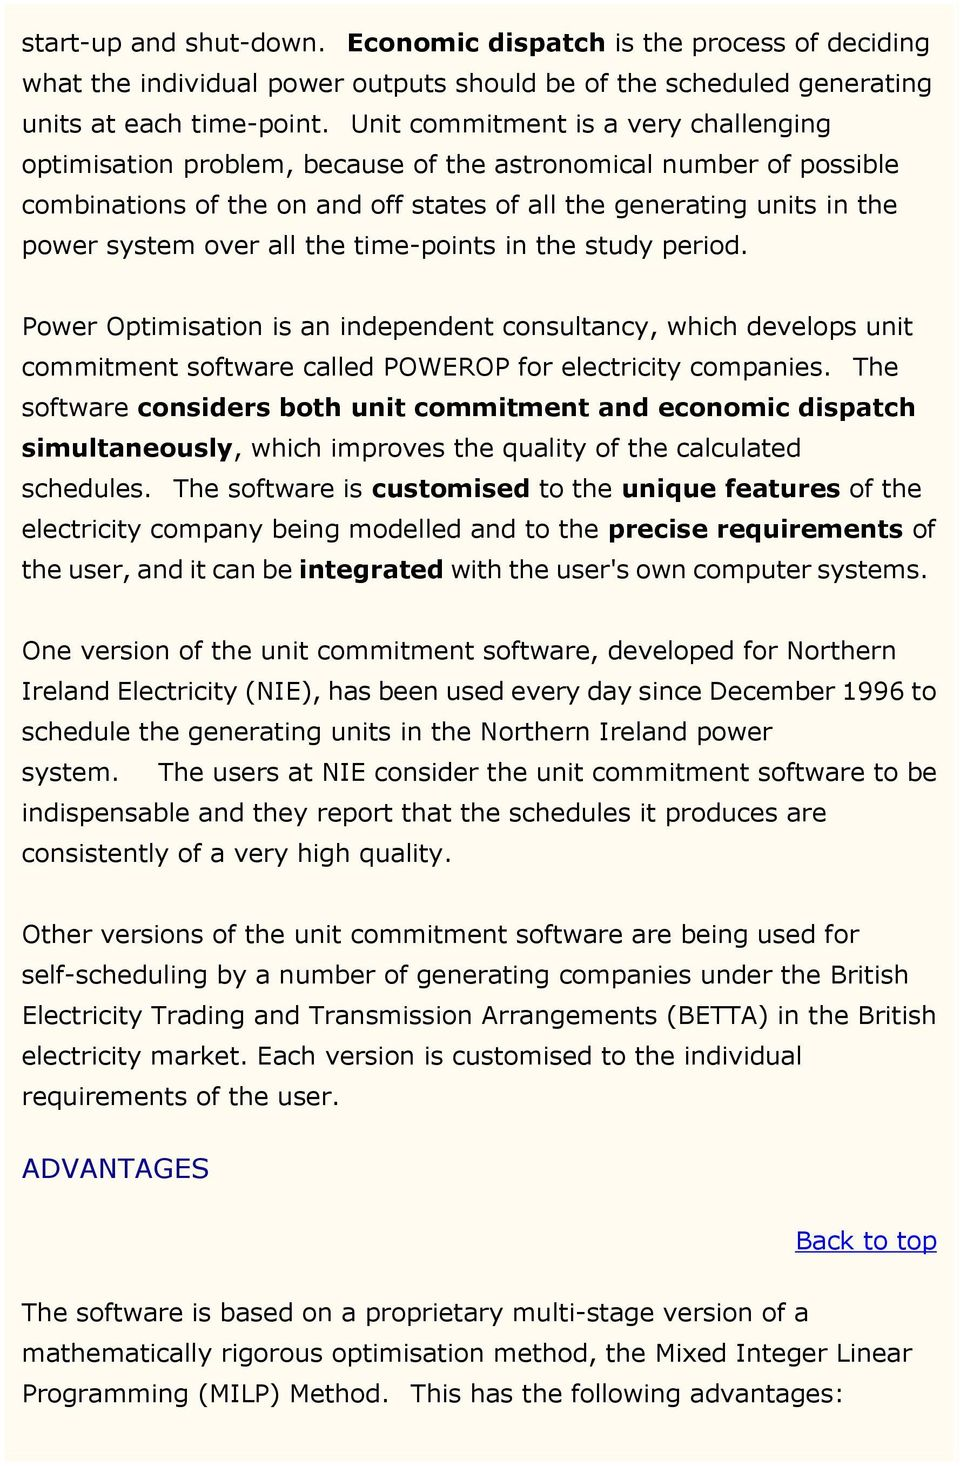 all the time-points in the study period. Power Optimisation is an independent consultancy, which develops unit commitment software called POWEROP for electricity companies.